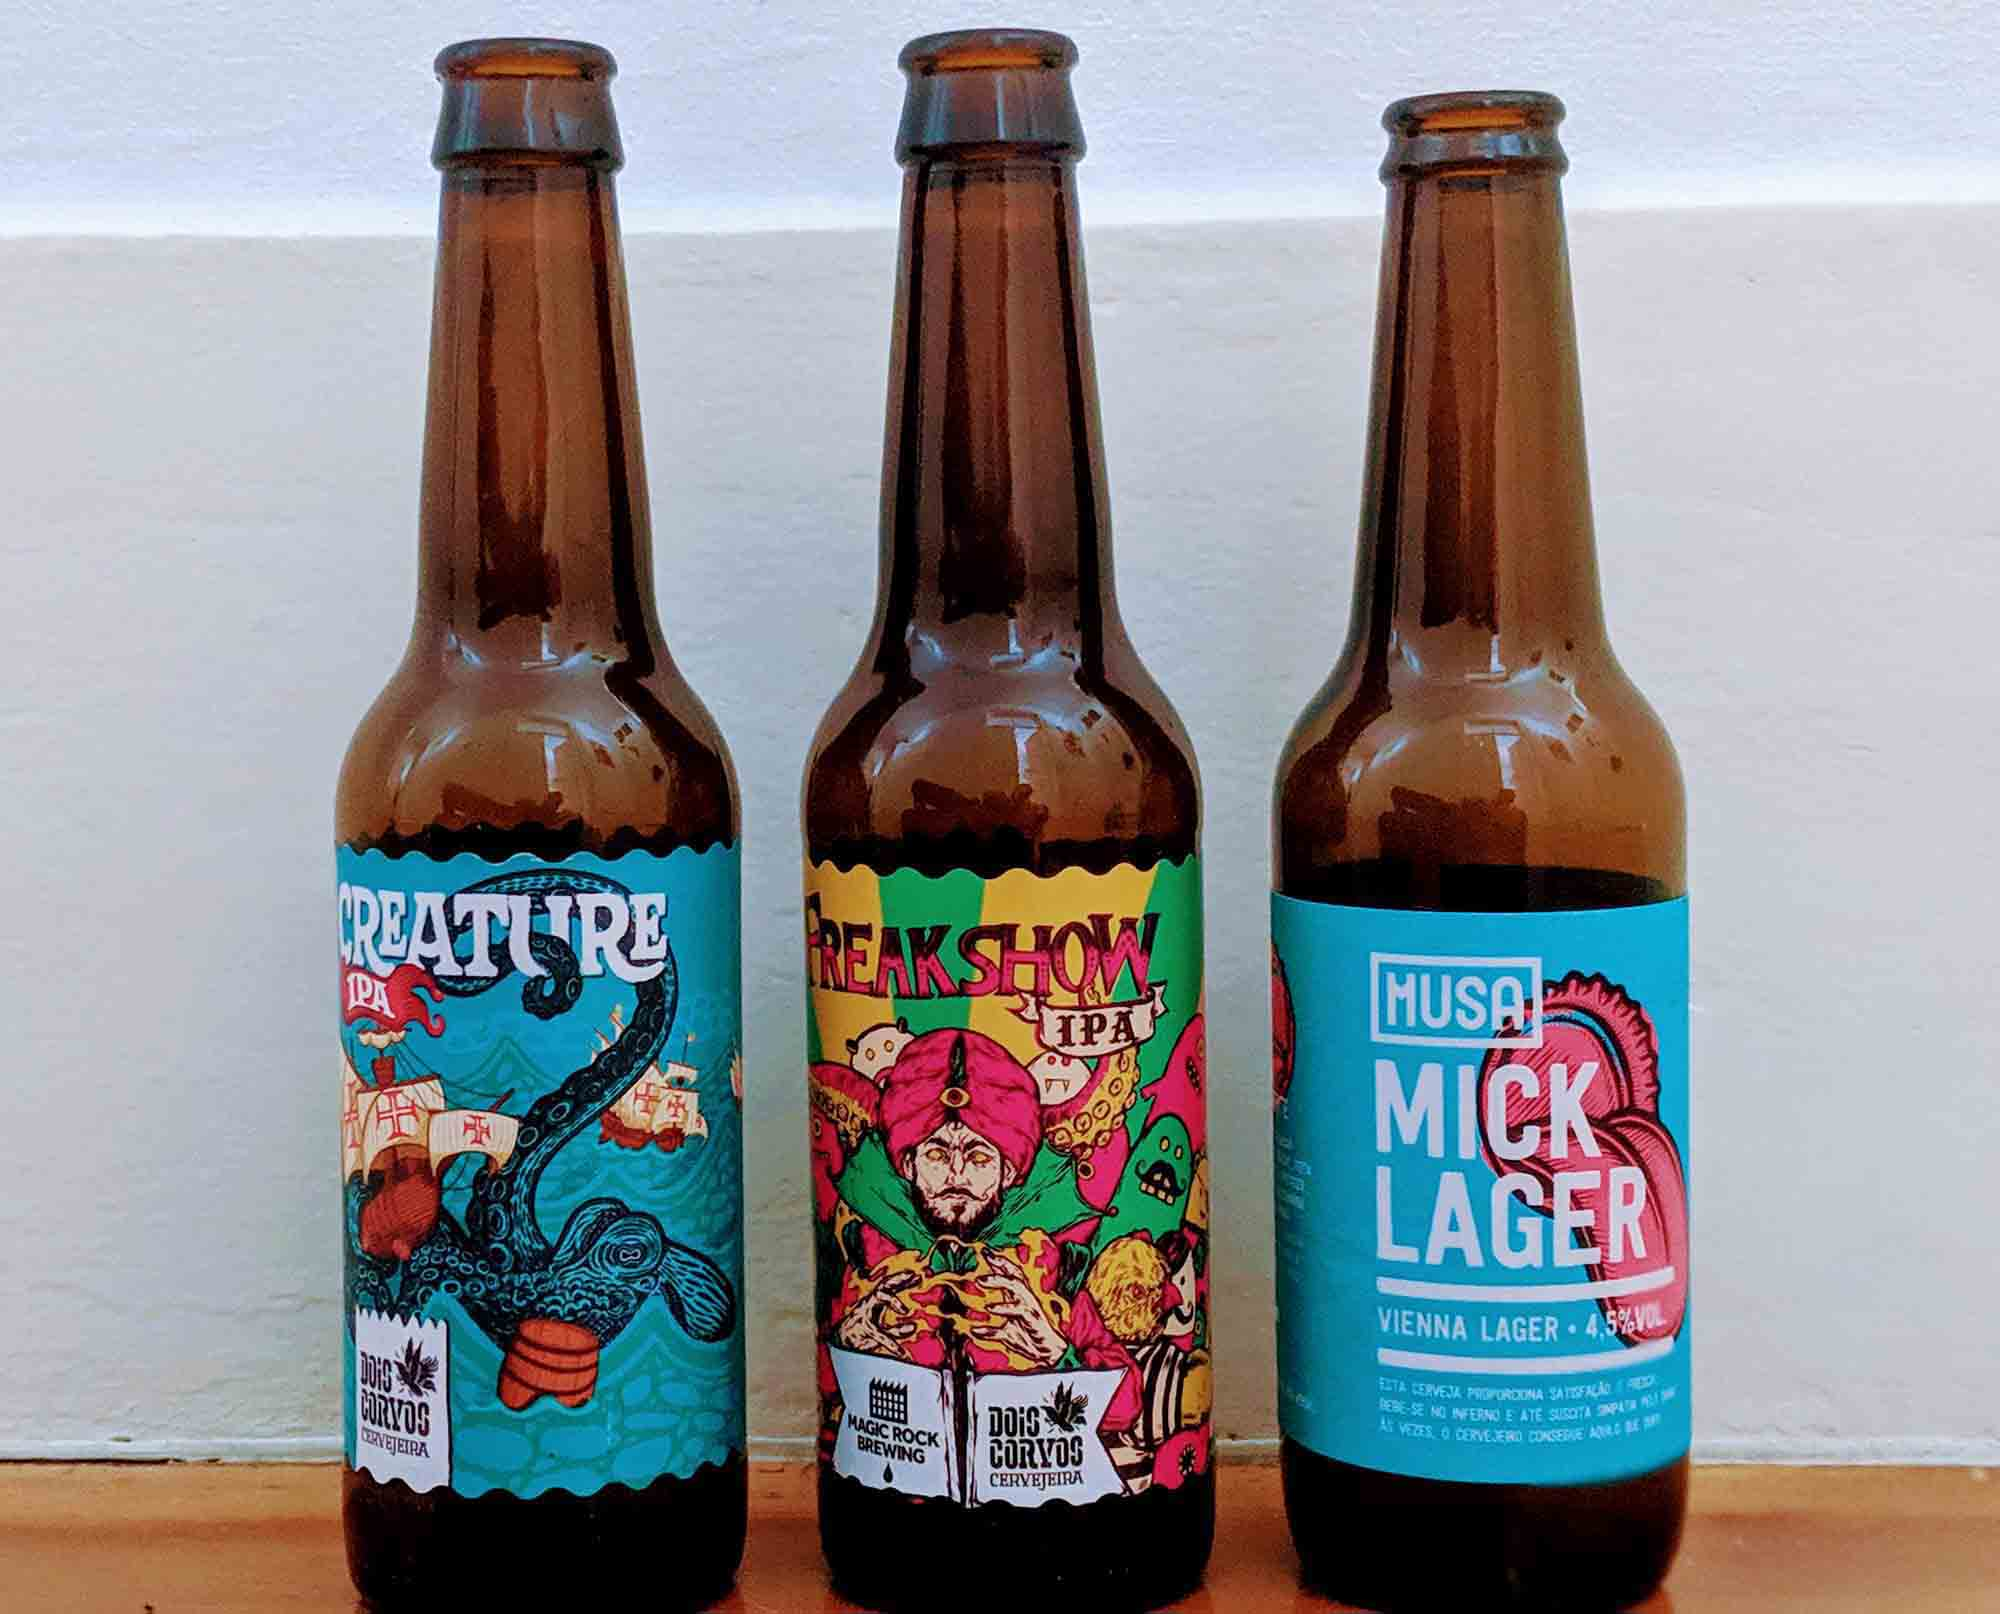 Portuguese craft beer bottles